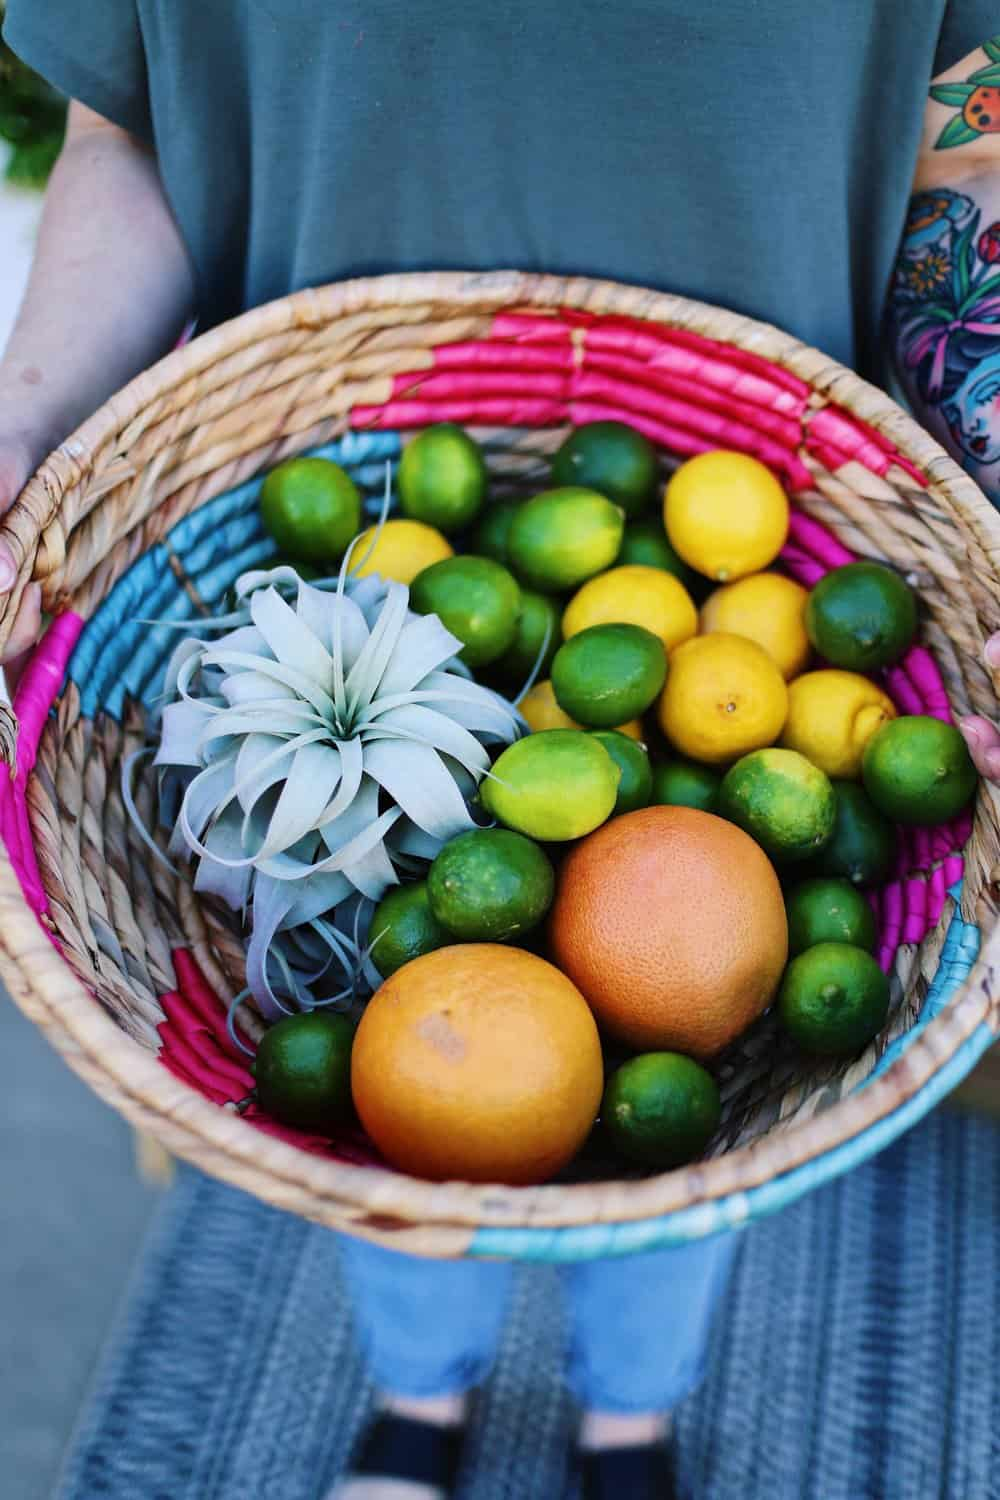 Two hands holding a wicker basket full of grapefruit lemons and limes